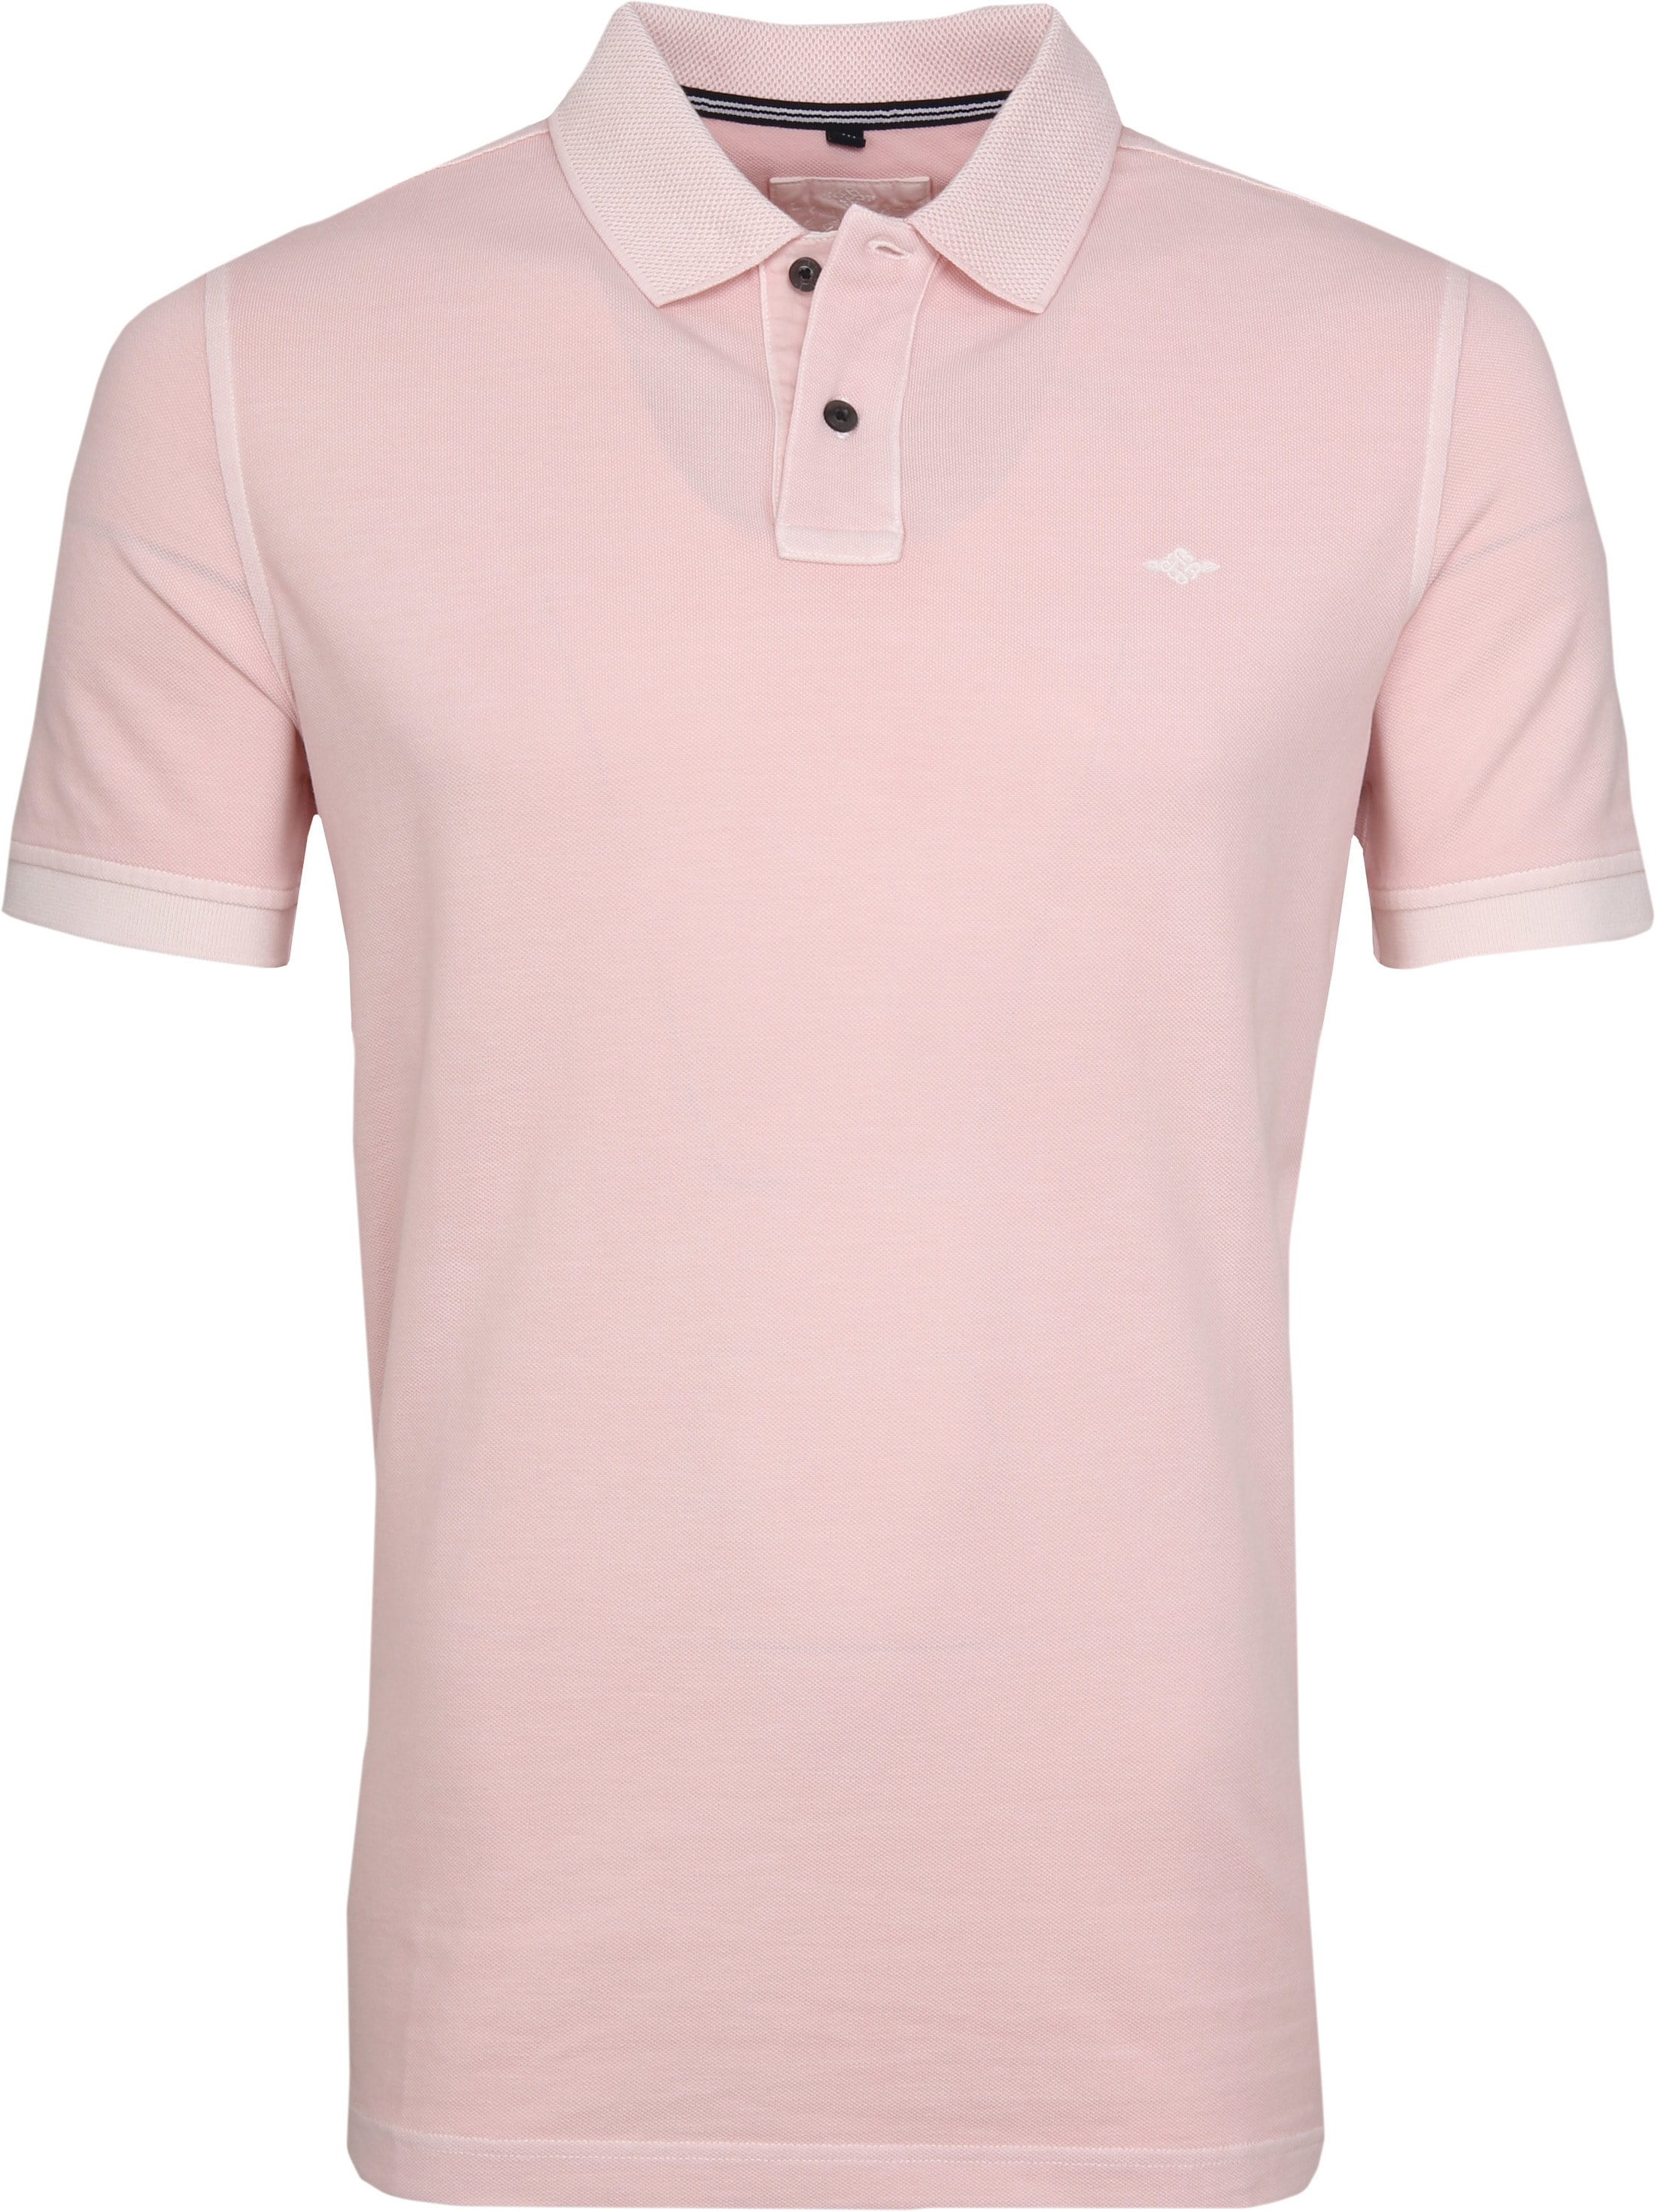 Suitable Poloshirt Boston Roze foto 0